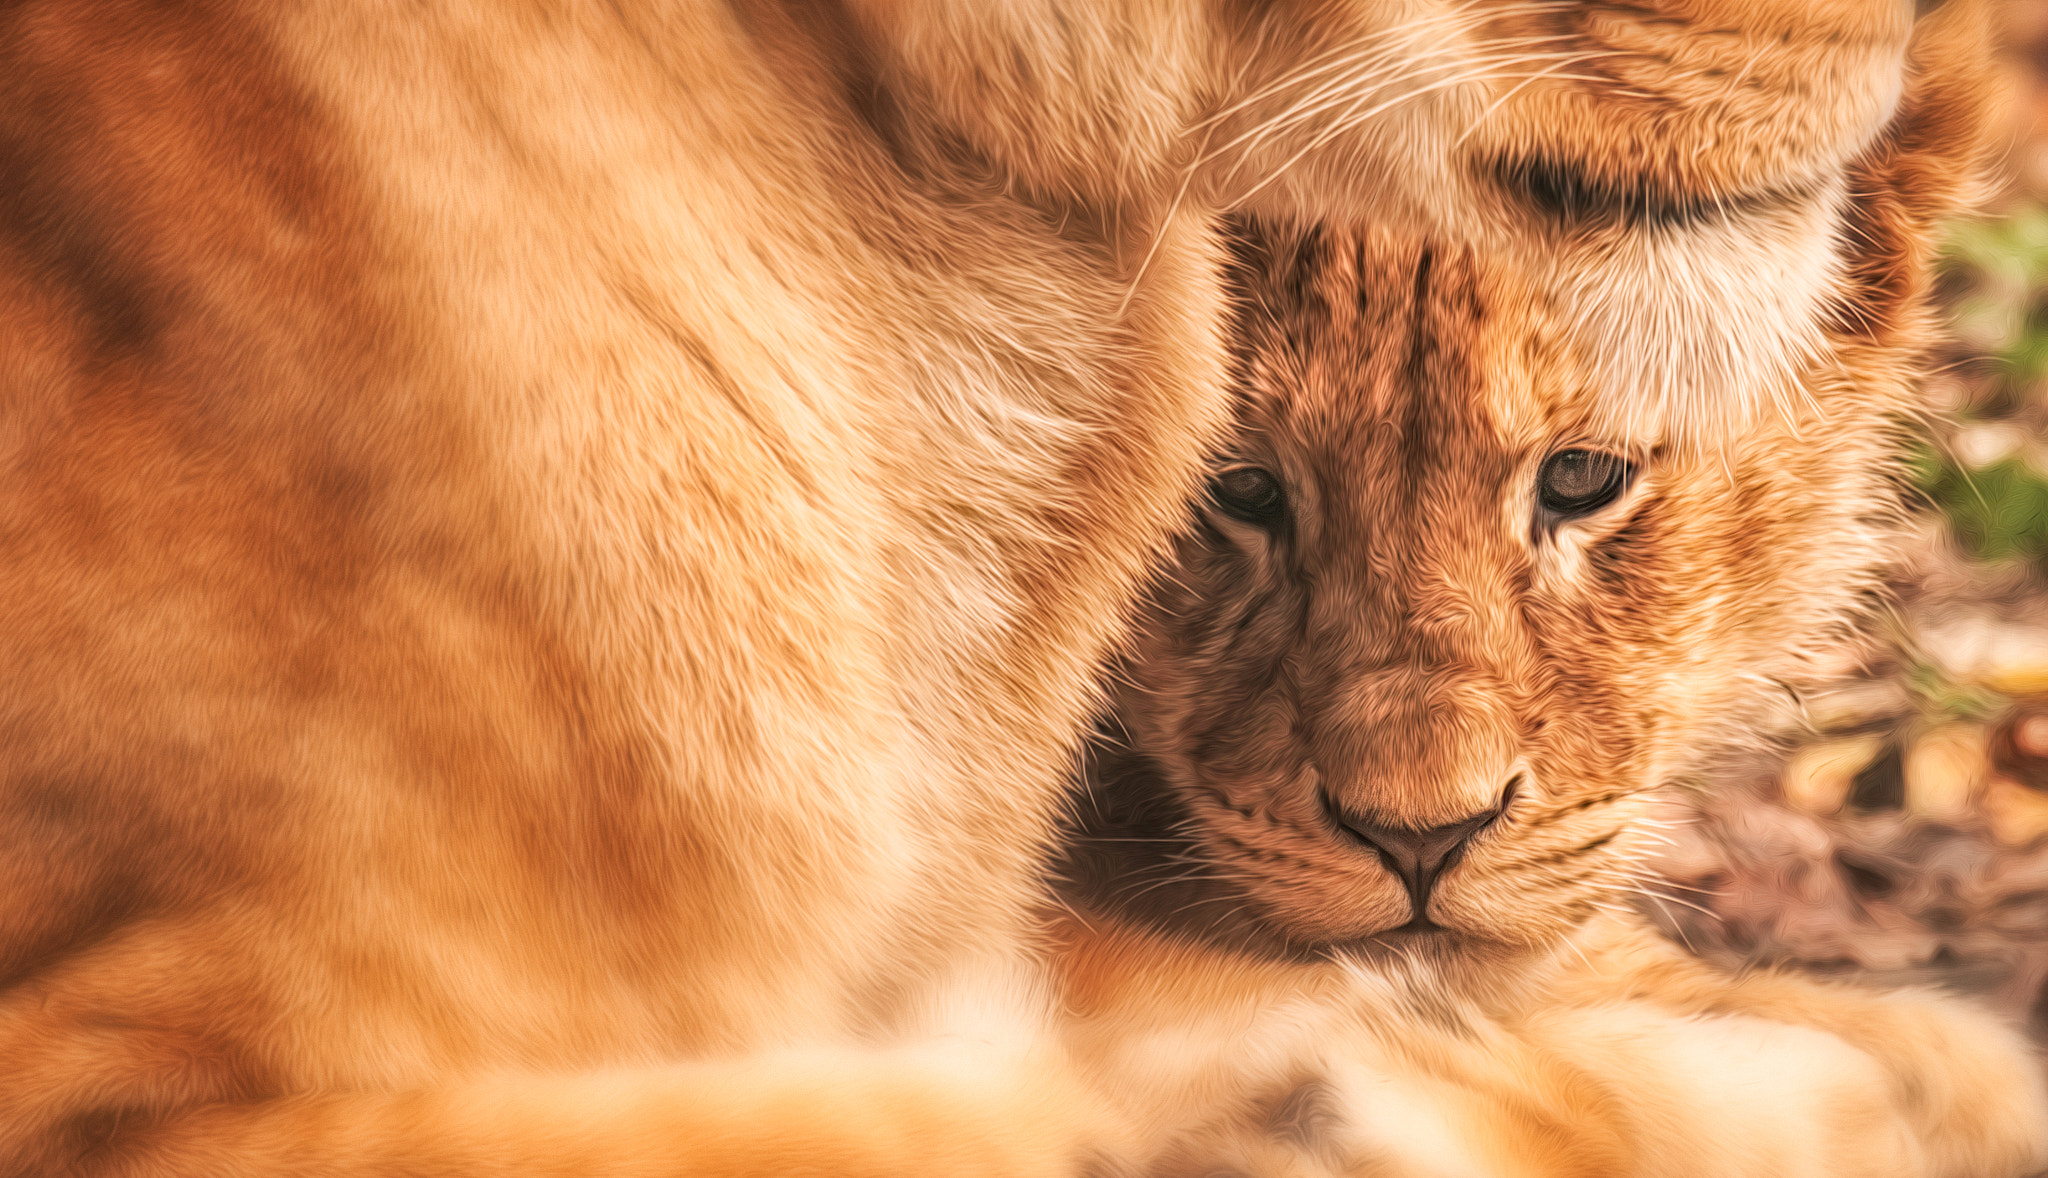 Photograph Protection by Denis Van Linden on 500px